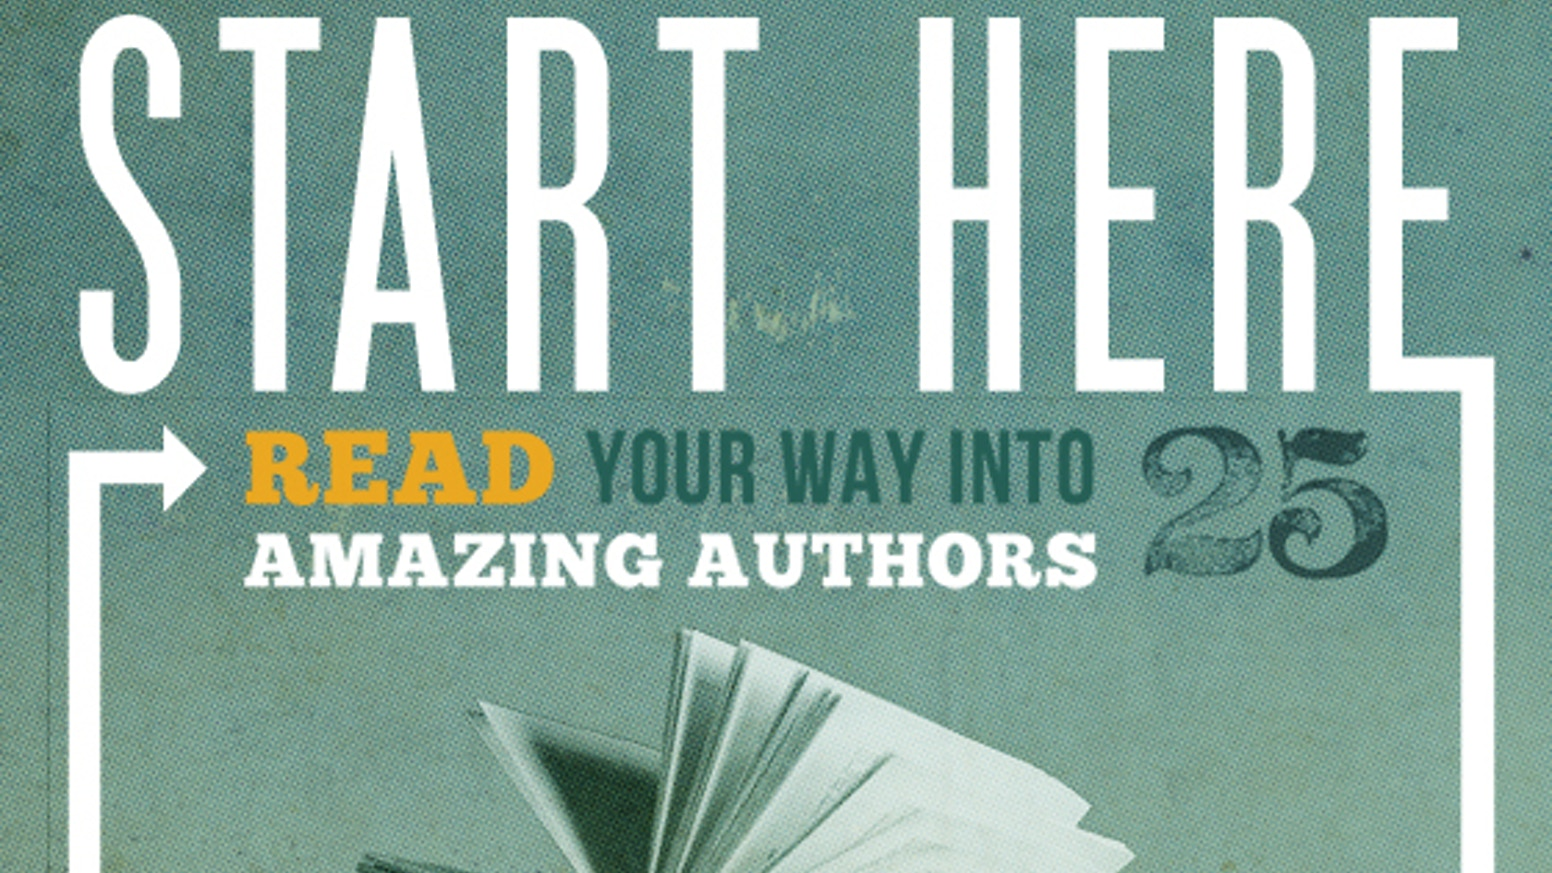 Start Here Read Your Way Into 25 Amazing Authors By Book